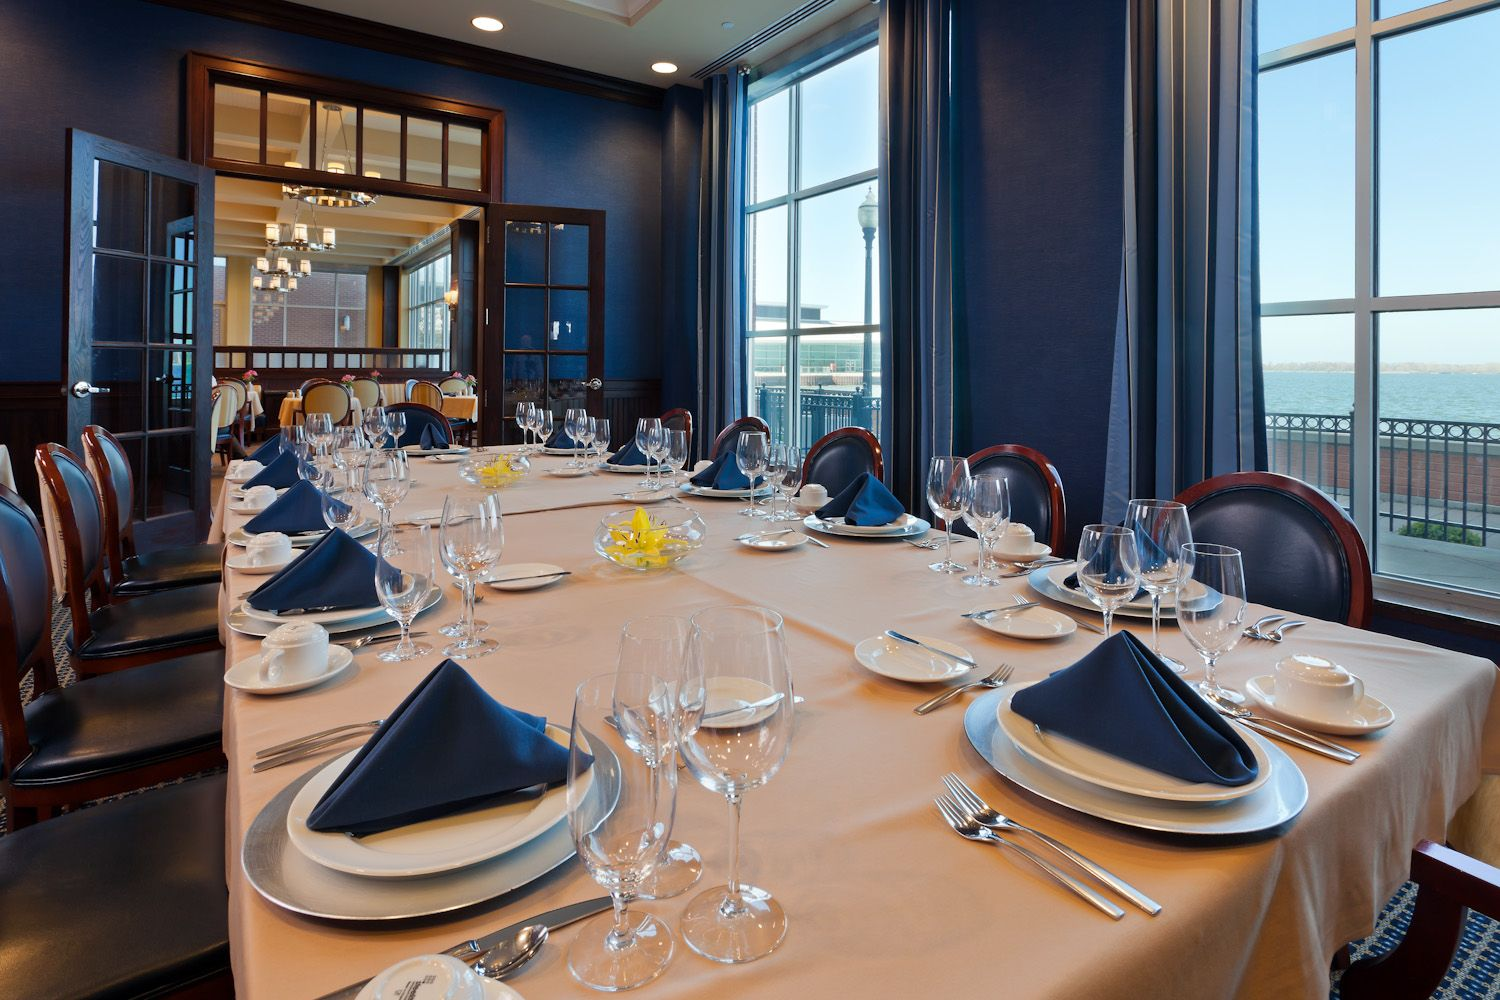 The Private Dining Room in the Bayfront Grille in the